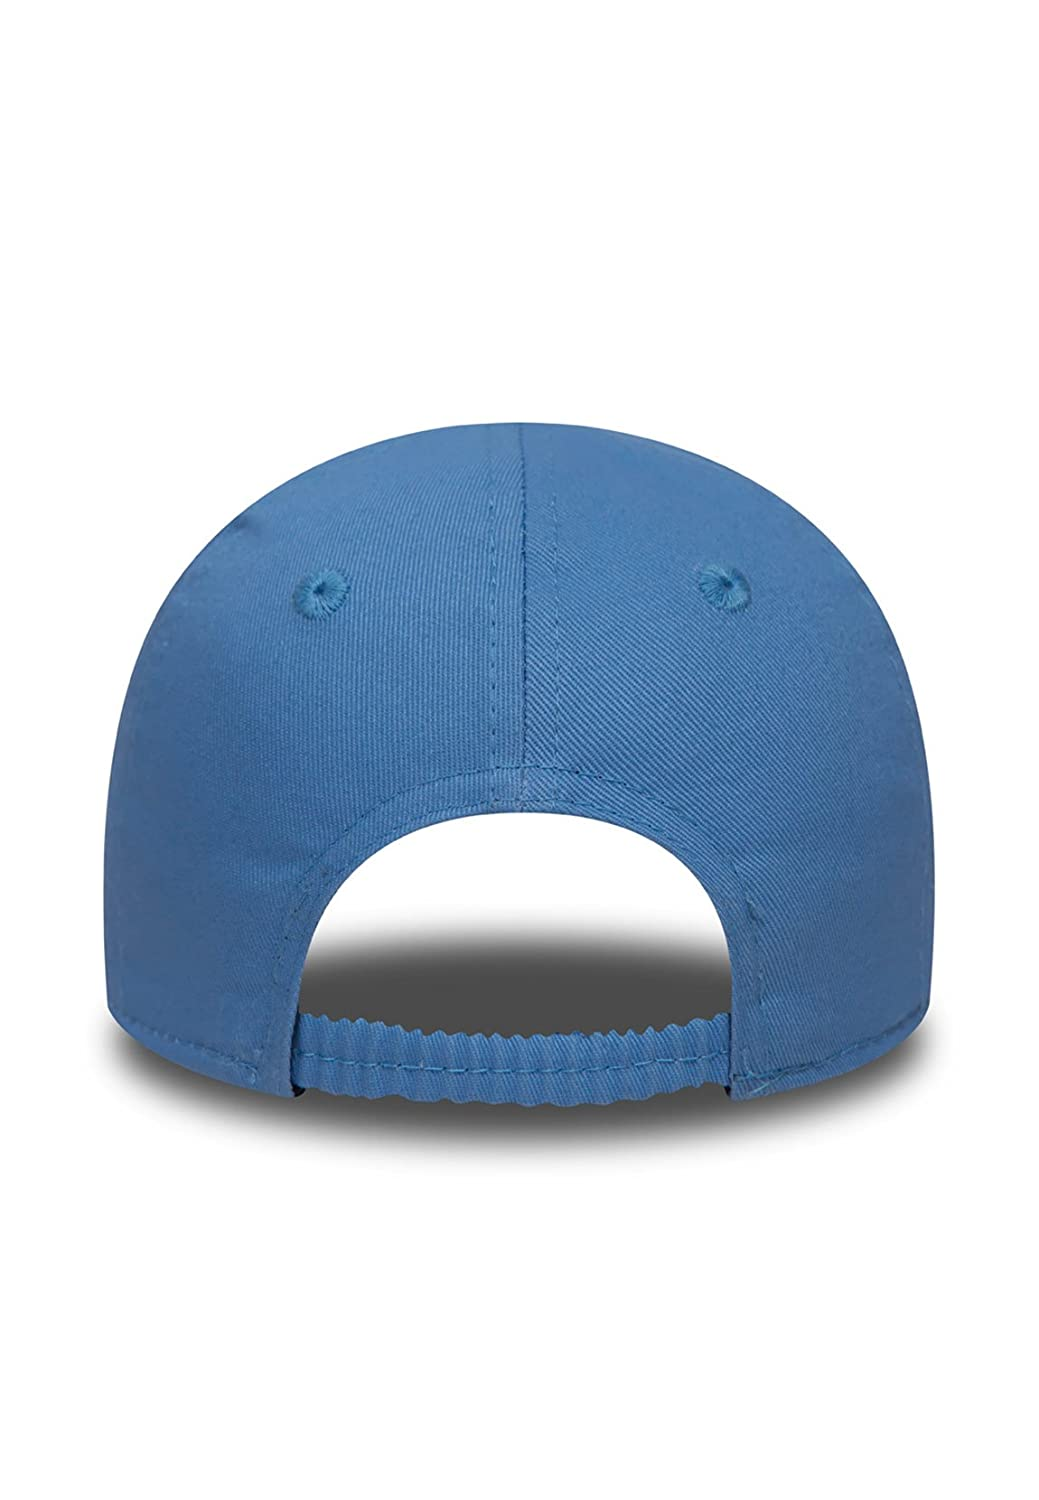 New Era Disney Xpress Mickey Mouse 9Forty Elasticback Cap Sky Blue Infant  Seaugling  Amazon.es  Ropa y accesorios 30911d6a3be